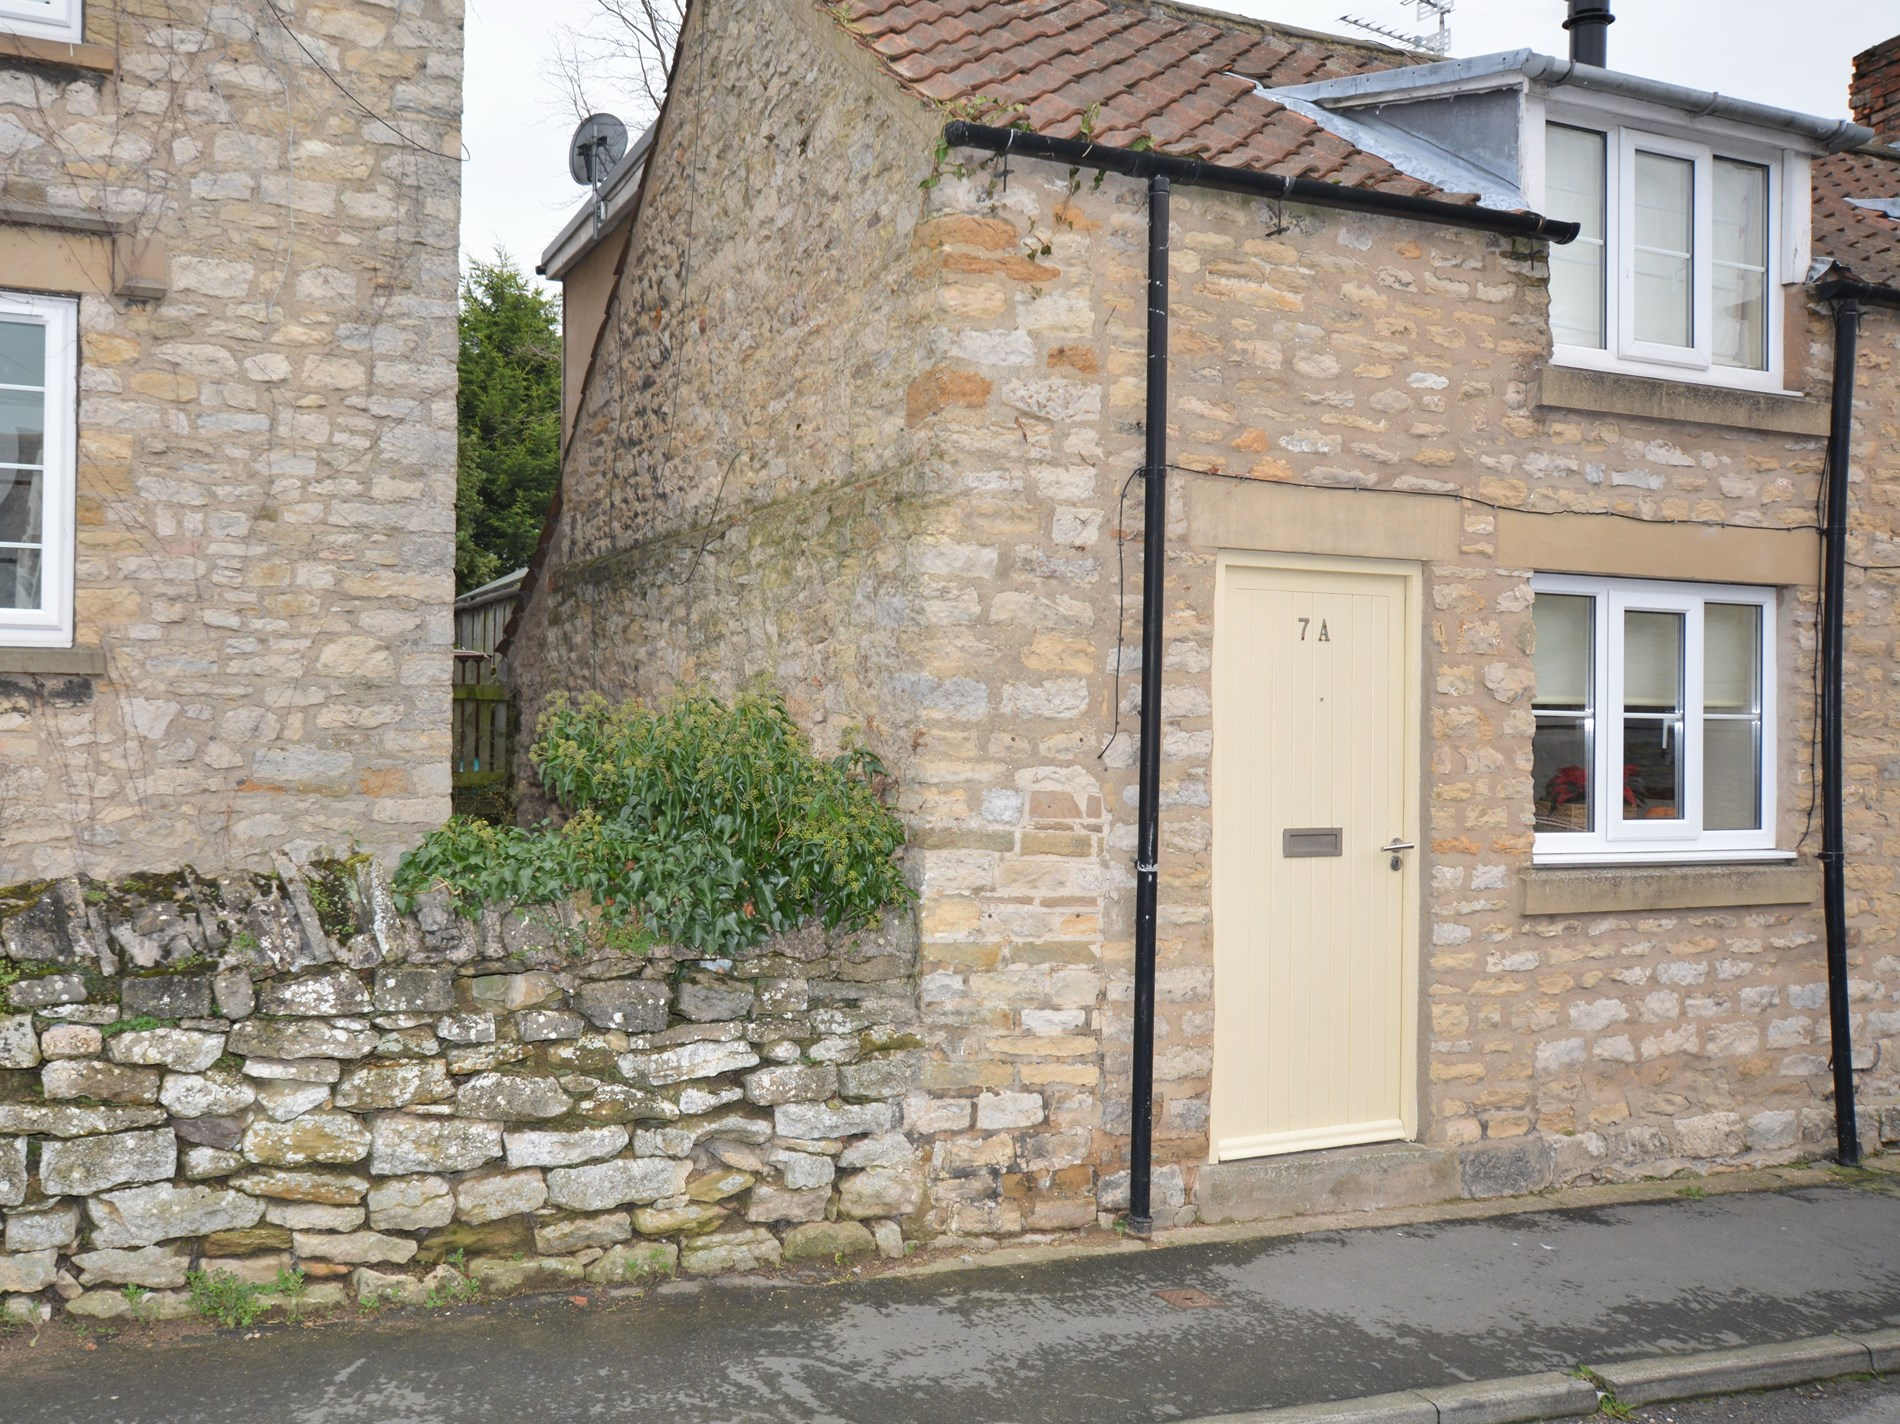 2 Bedroom Cottage in York, Yorkshire Dales